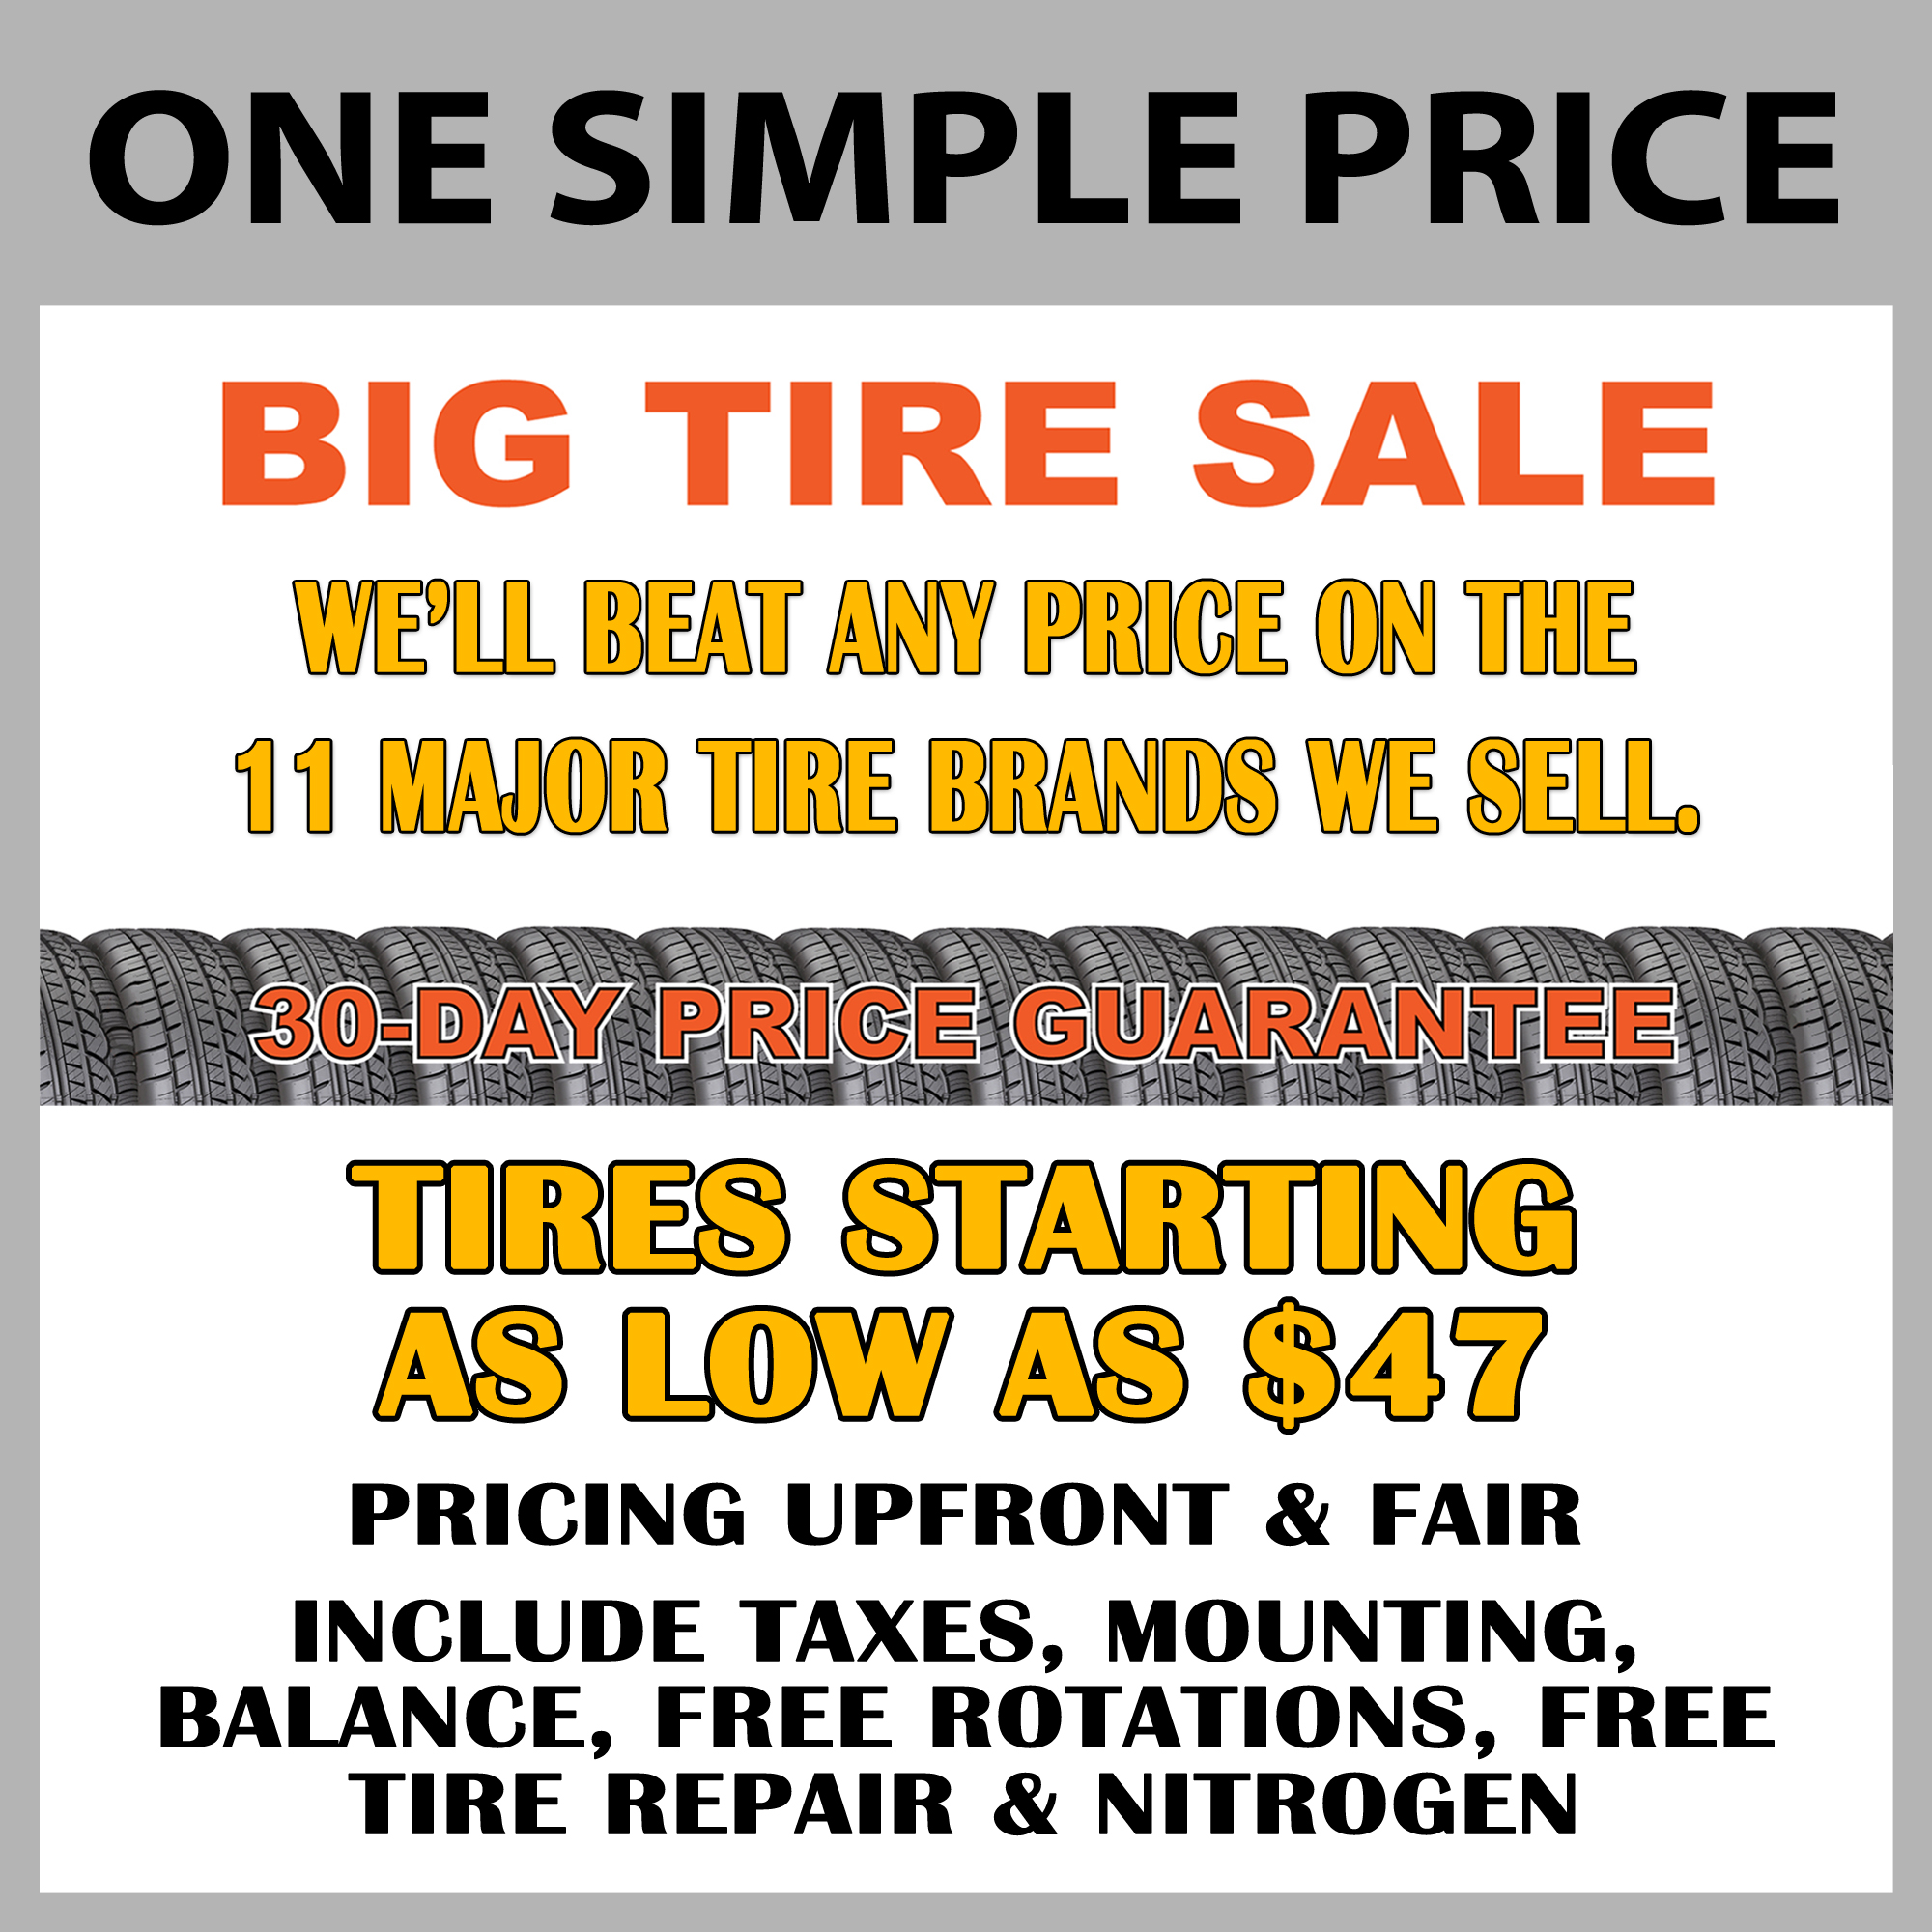 one simple price big tire sale